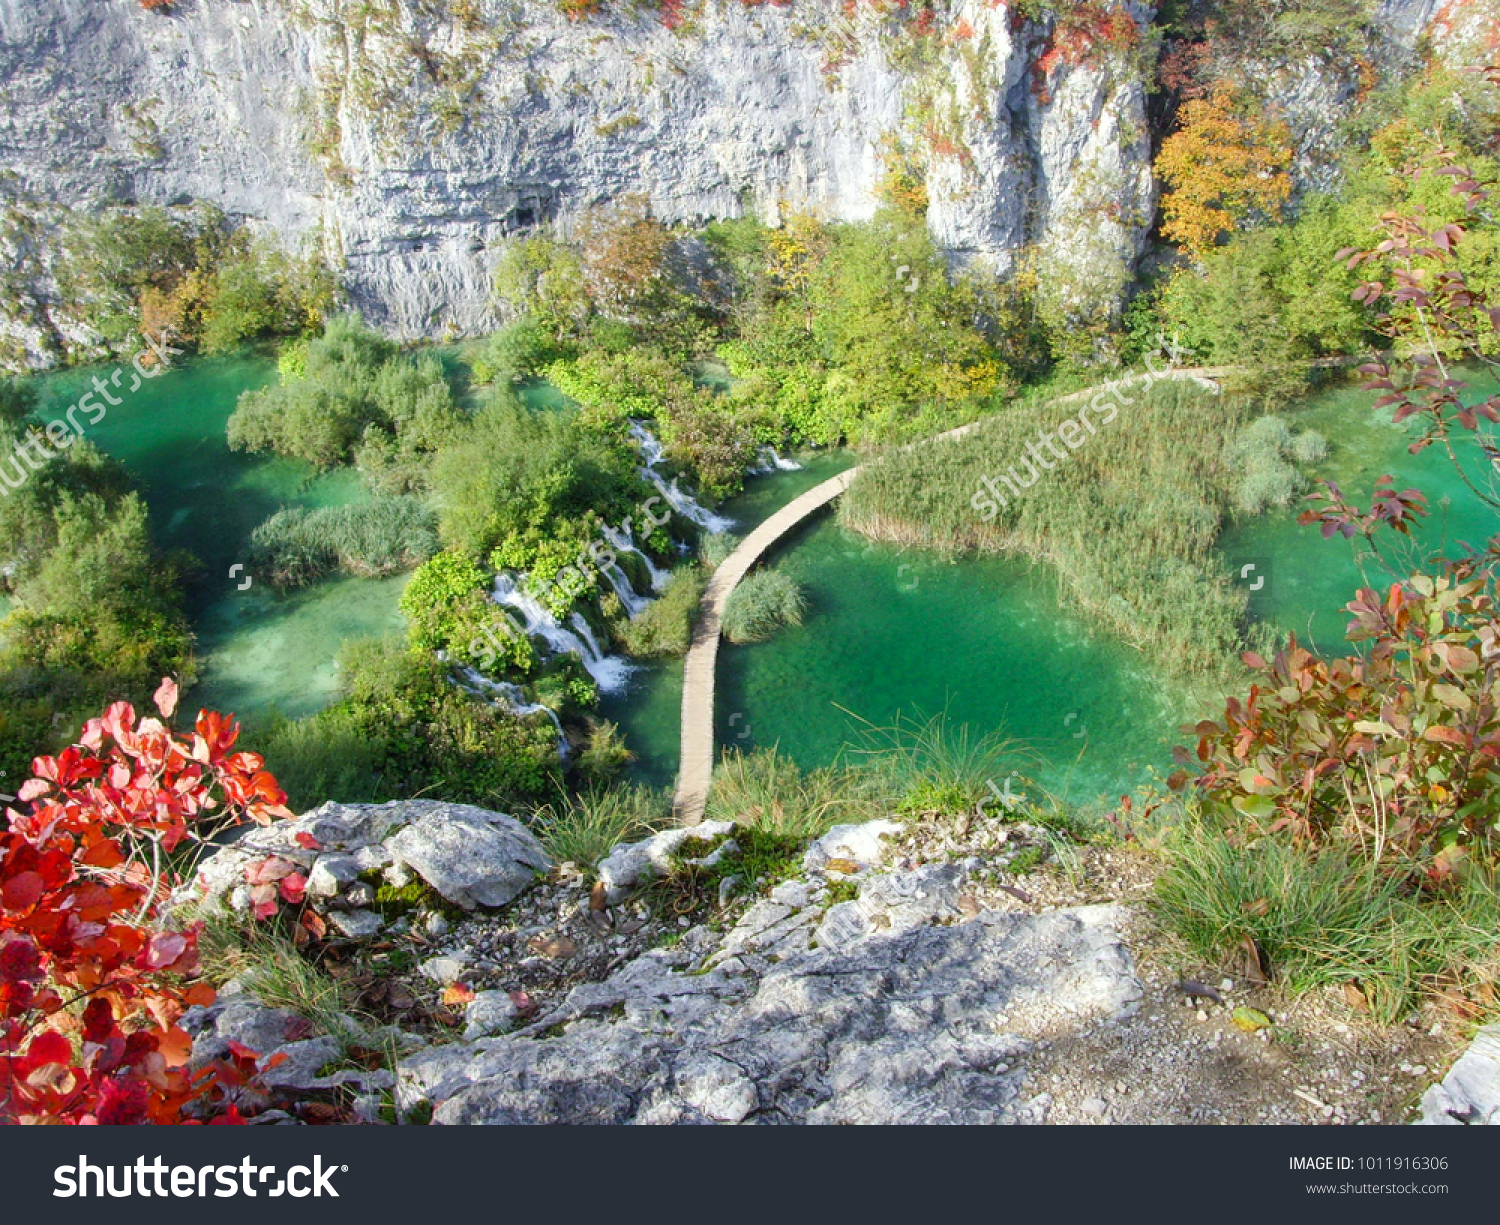 Scenic Areal View of Plitvice Lakes National Park, Croatia, the UNESCO World Heritage